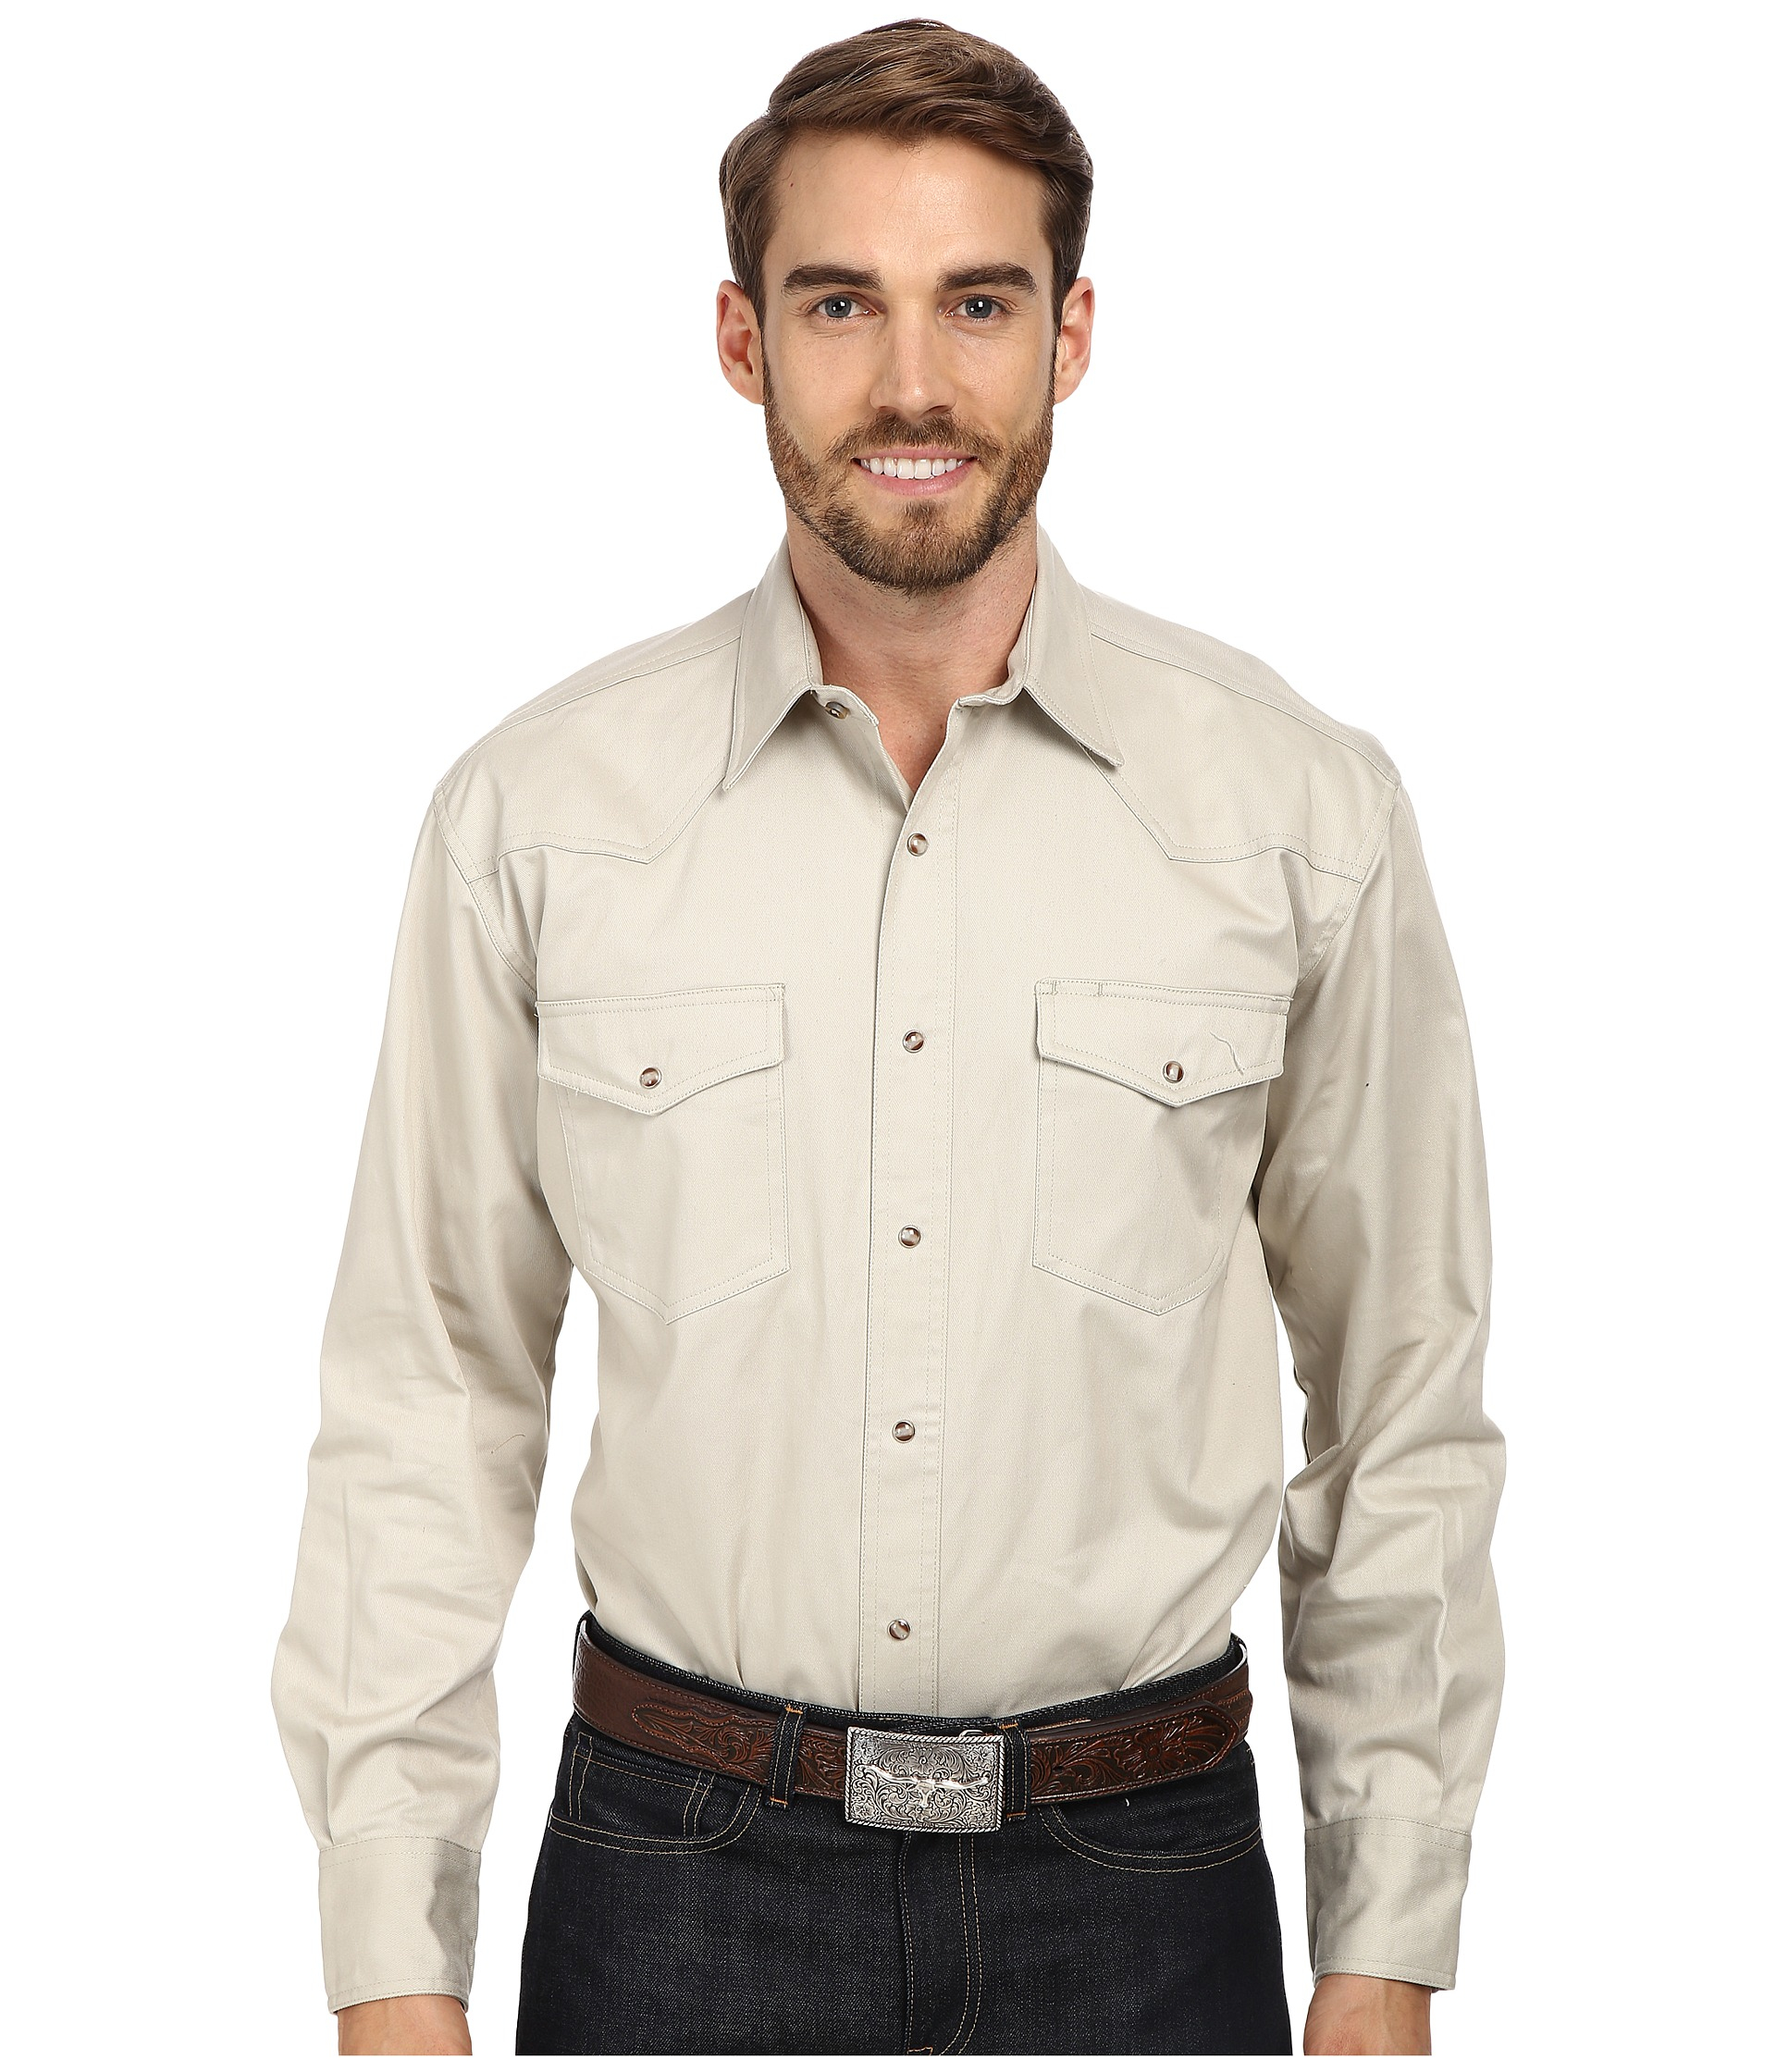 Roper l s solid basic snap front in natural for men lyst for Mens shirts with snaps instead of buttons